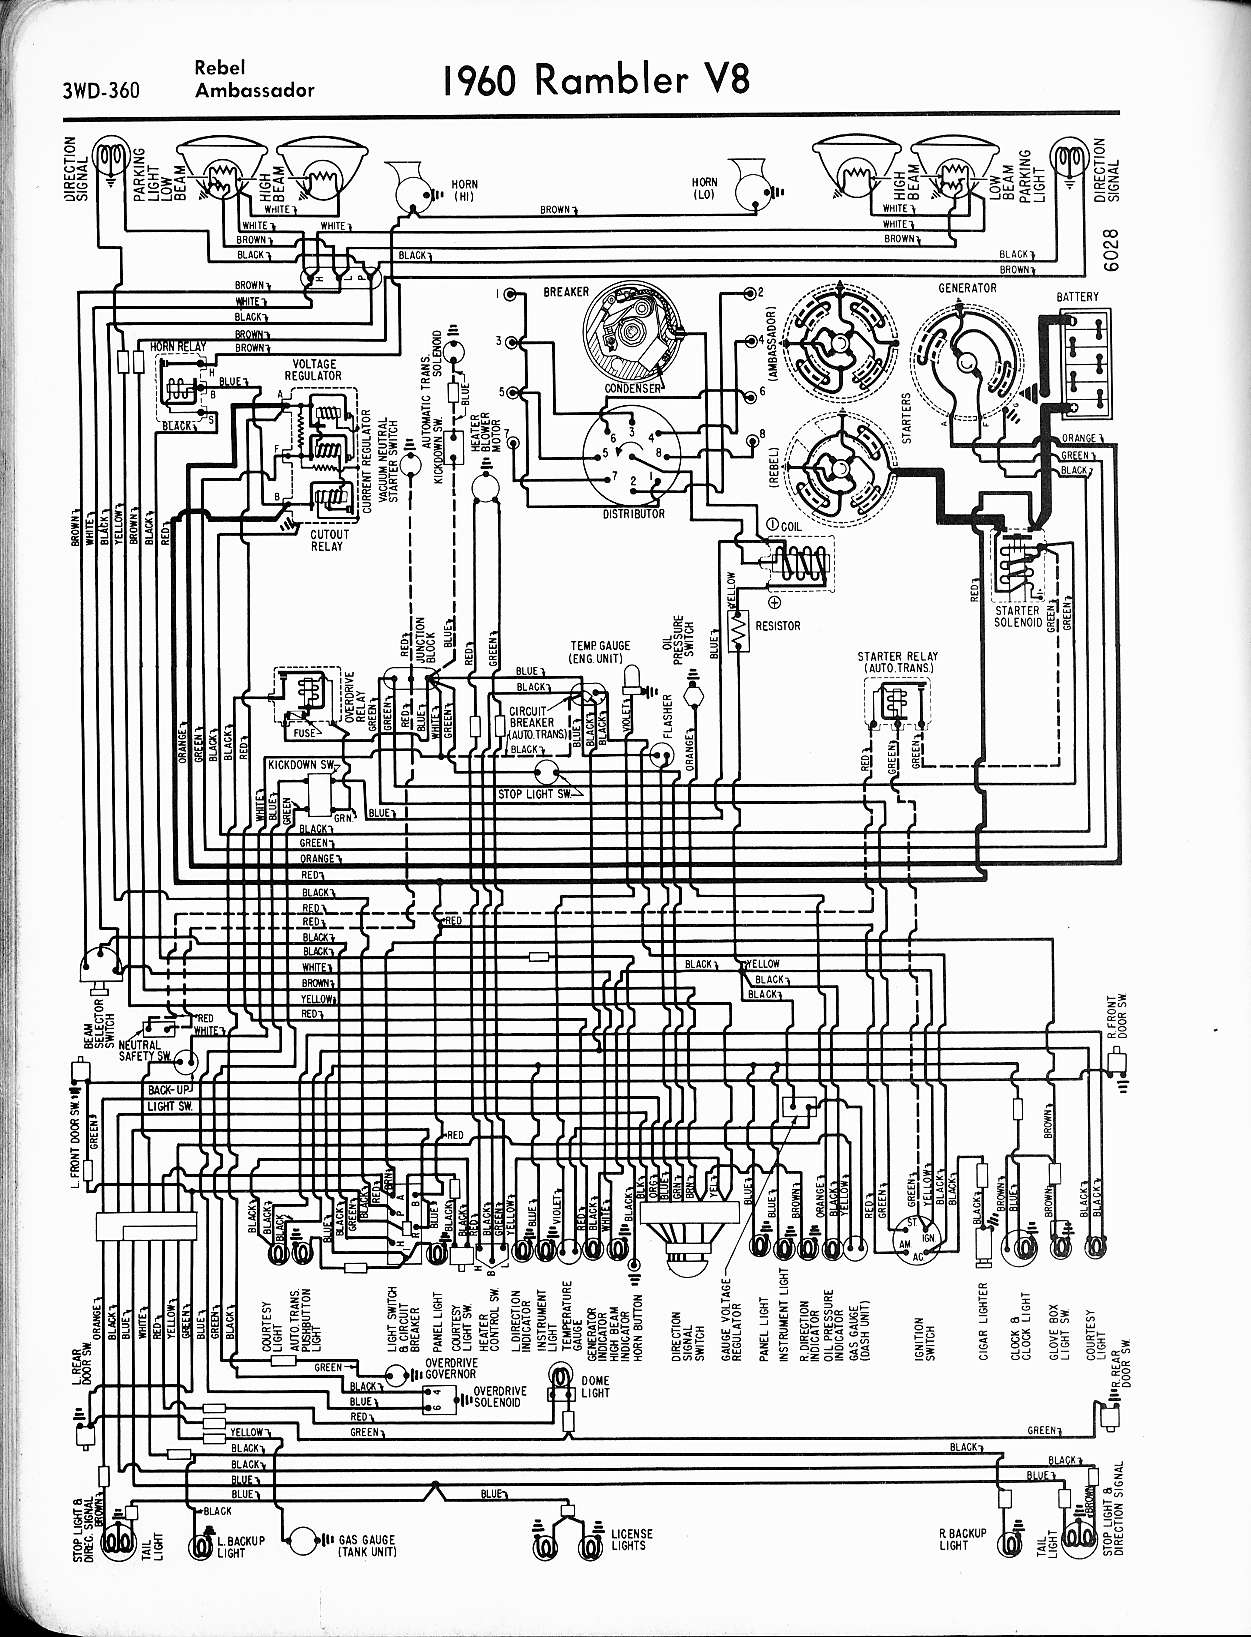 MWire5765 360 rambler wiring diagrams the old car manual project AMC Ambassador at creativeand.co